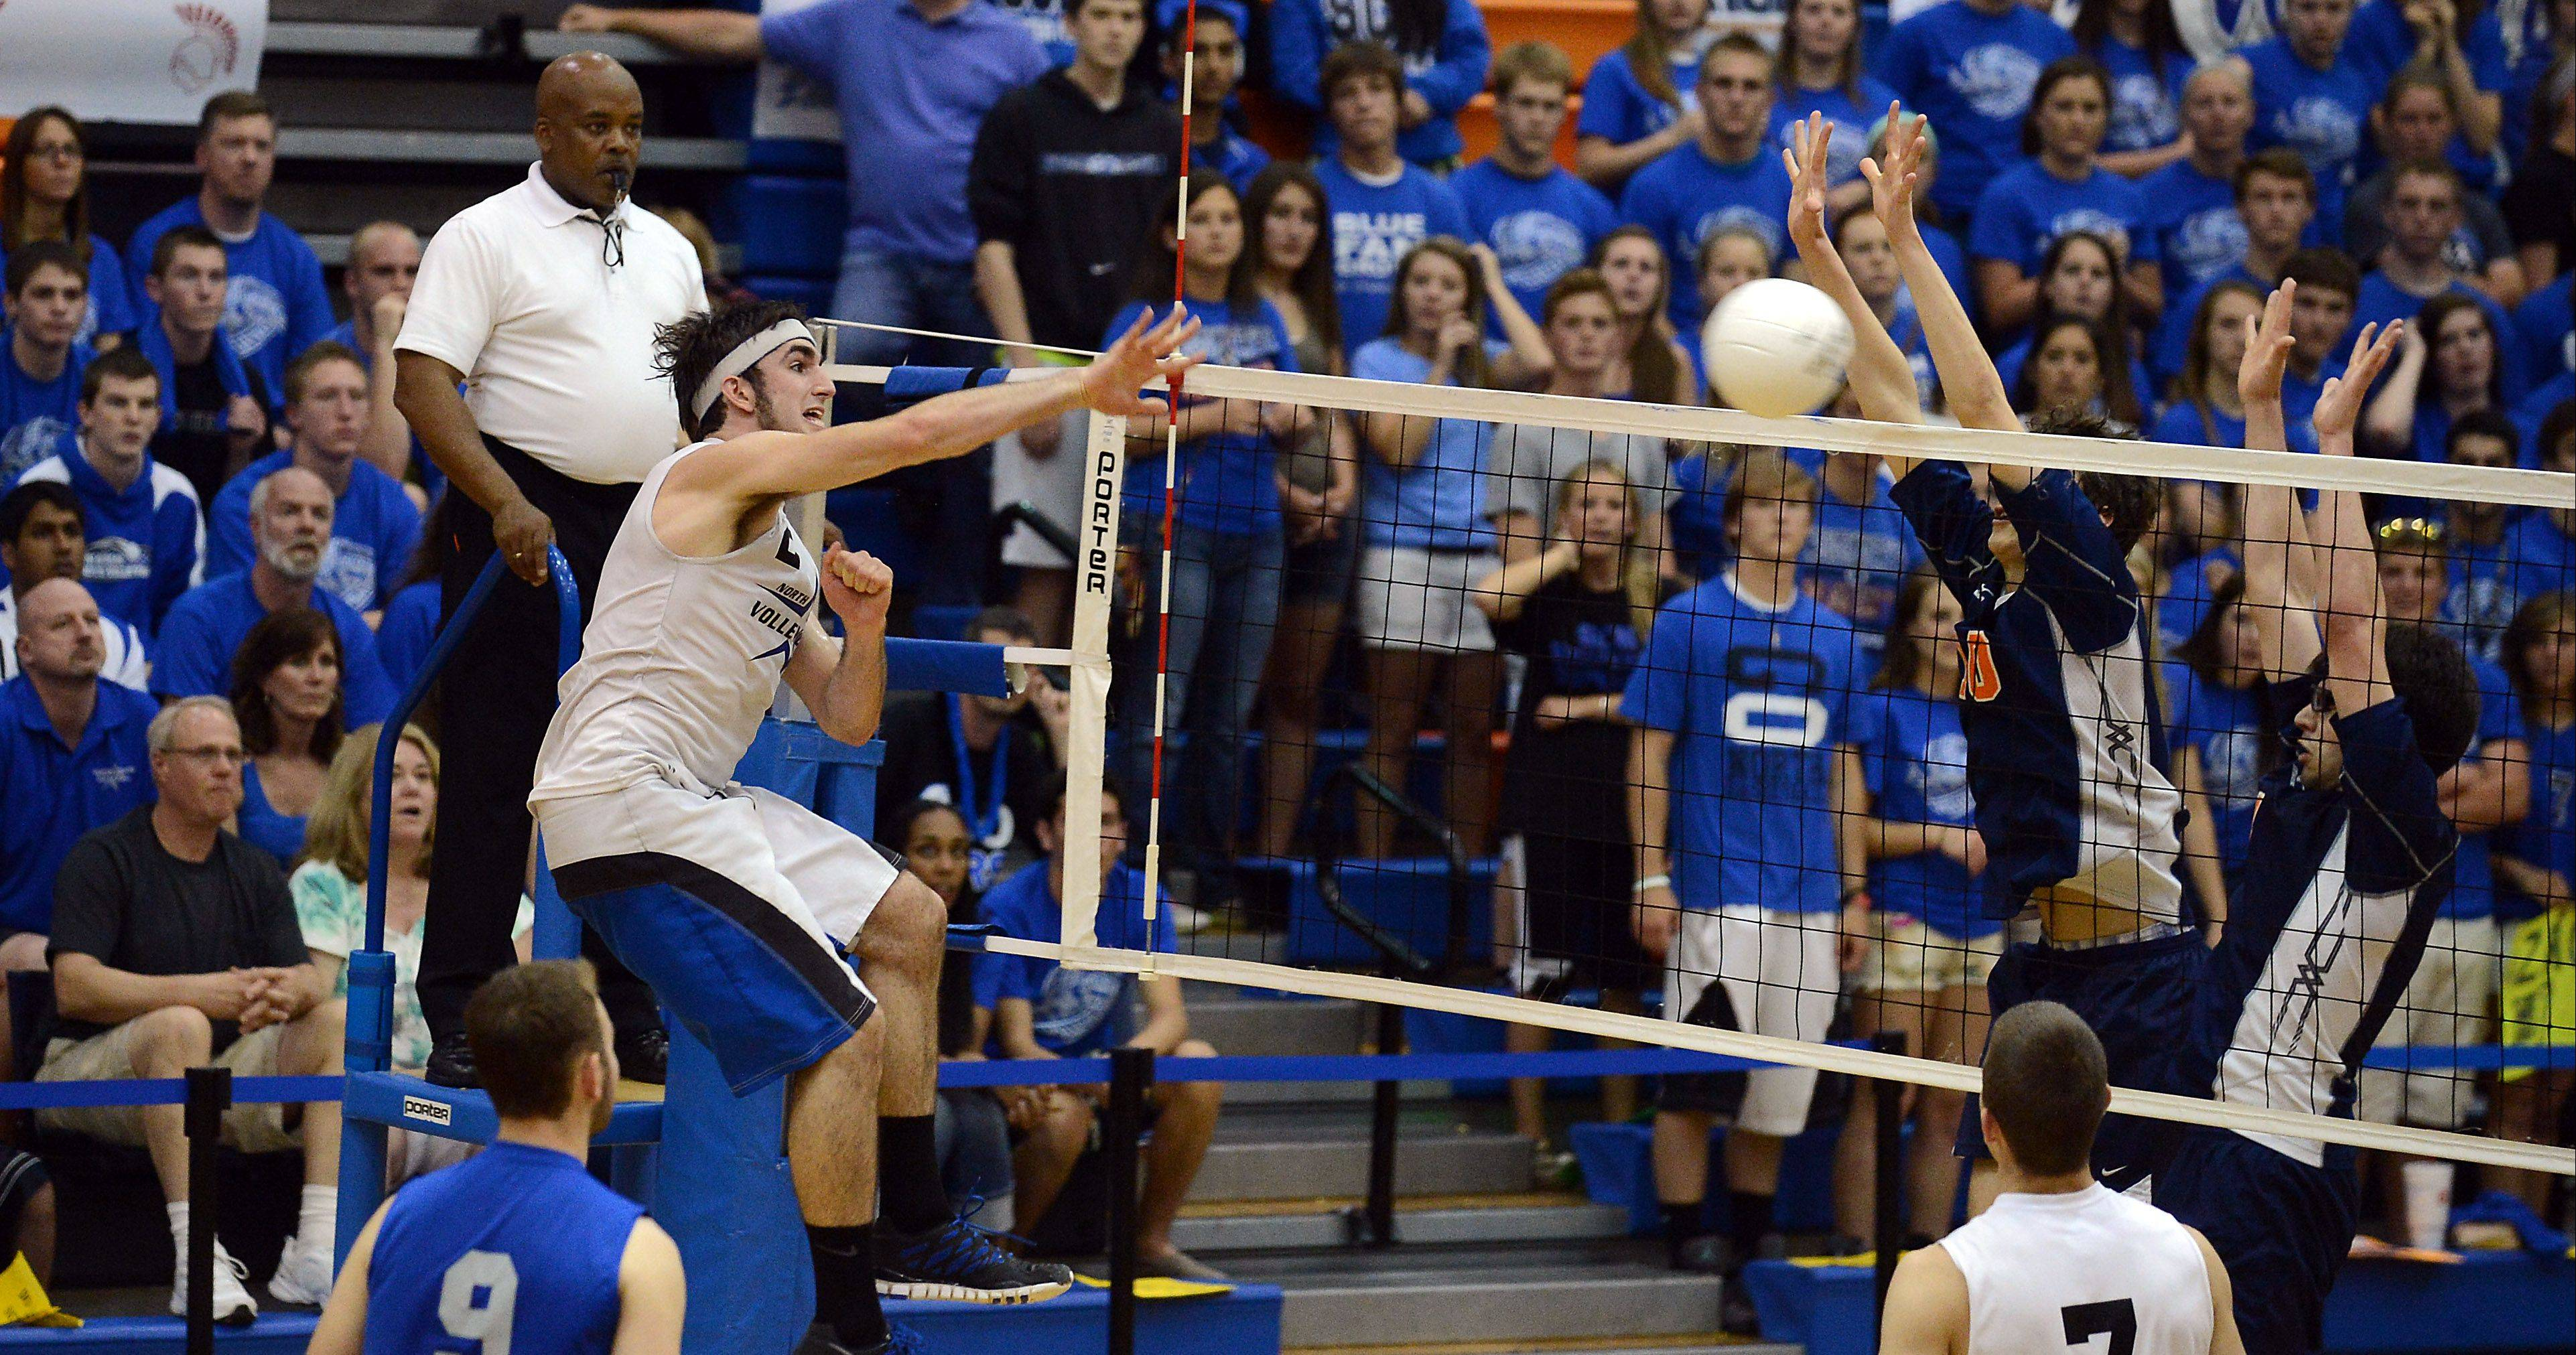 Johathan Orech, who led St. Charles North with 15 kills, spikes the ball past Oak Park at the boys volleyball state finals at Hoffman Estates High School Friday.